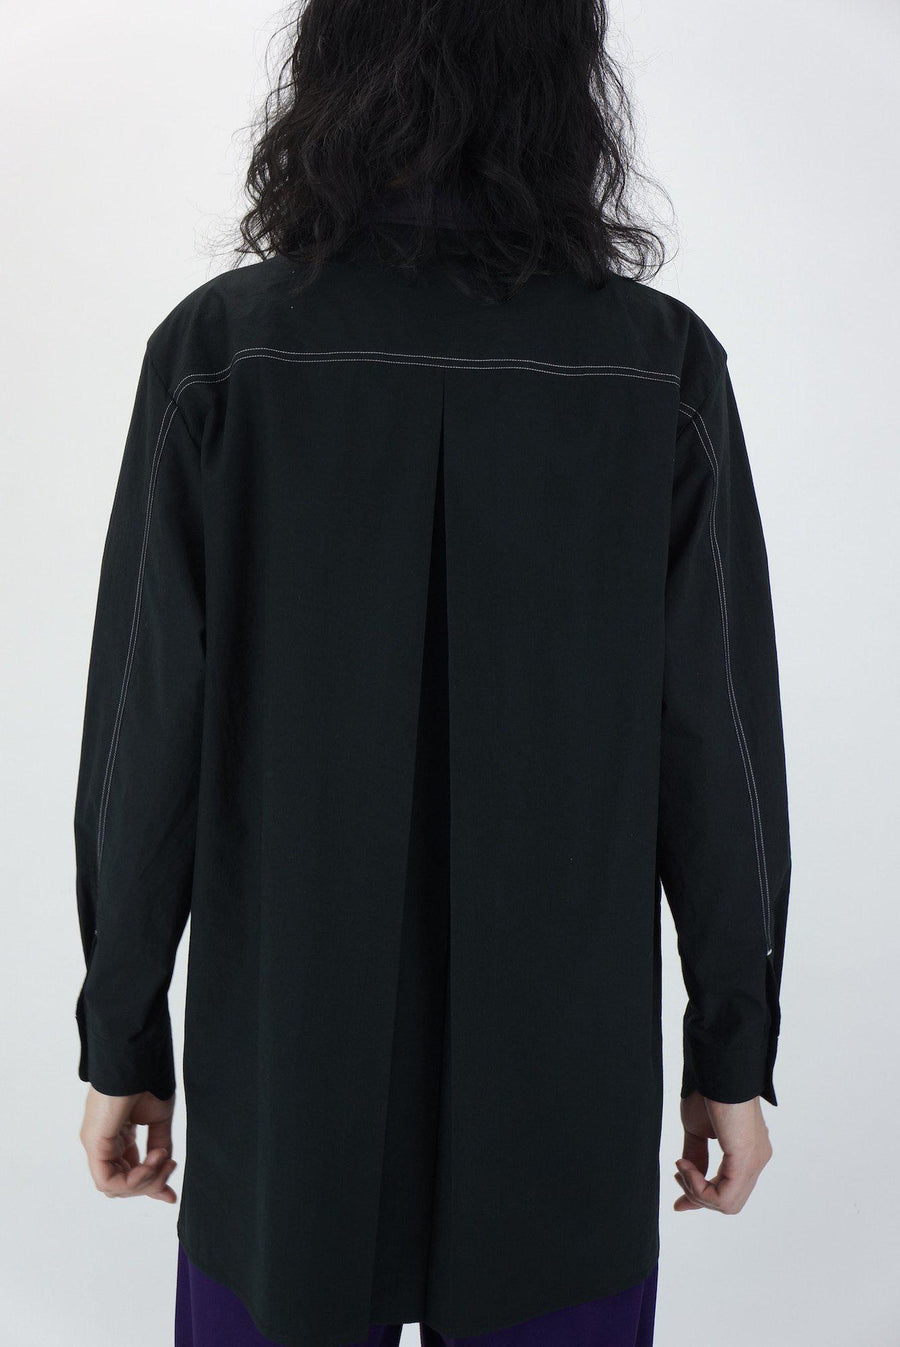 Ornis Shirt / BLACK